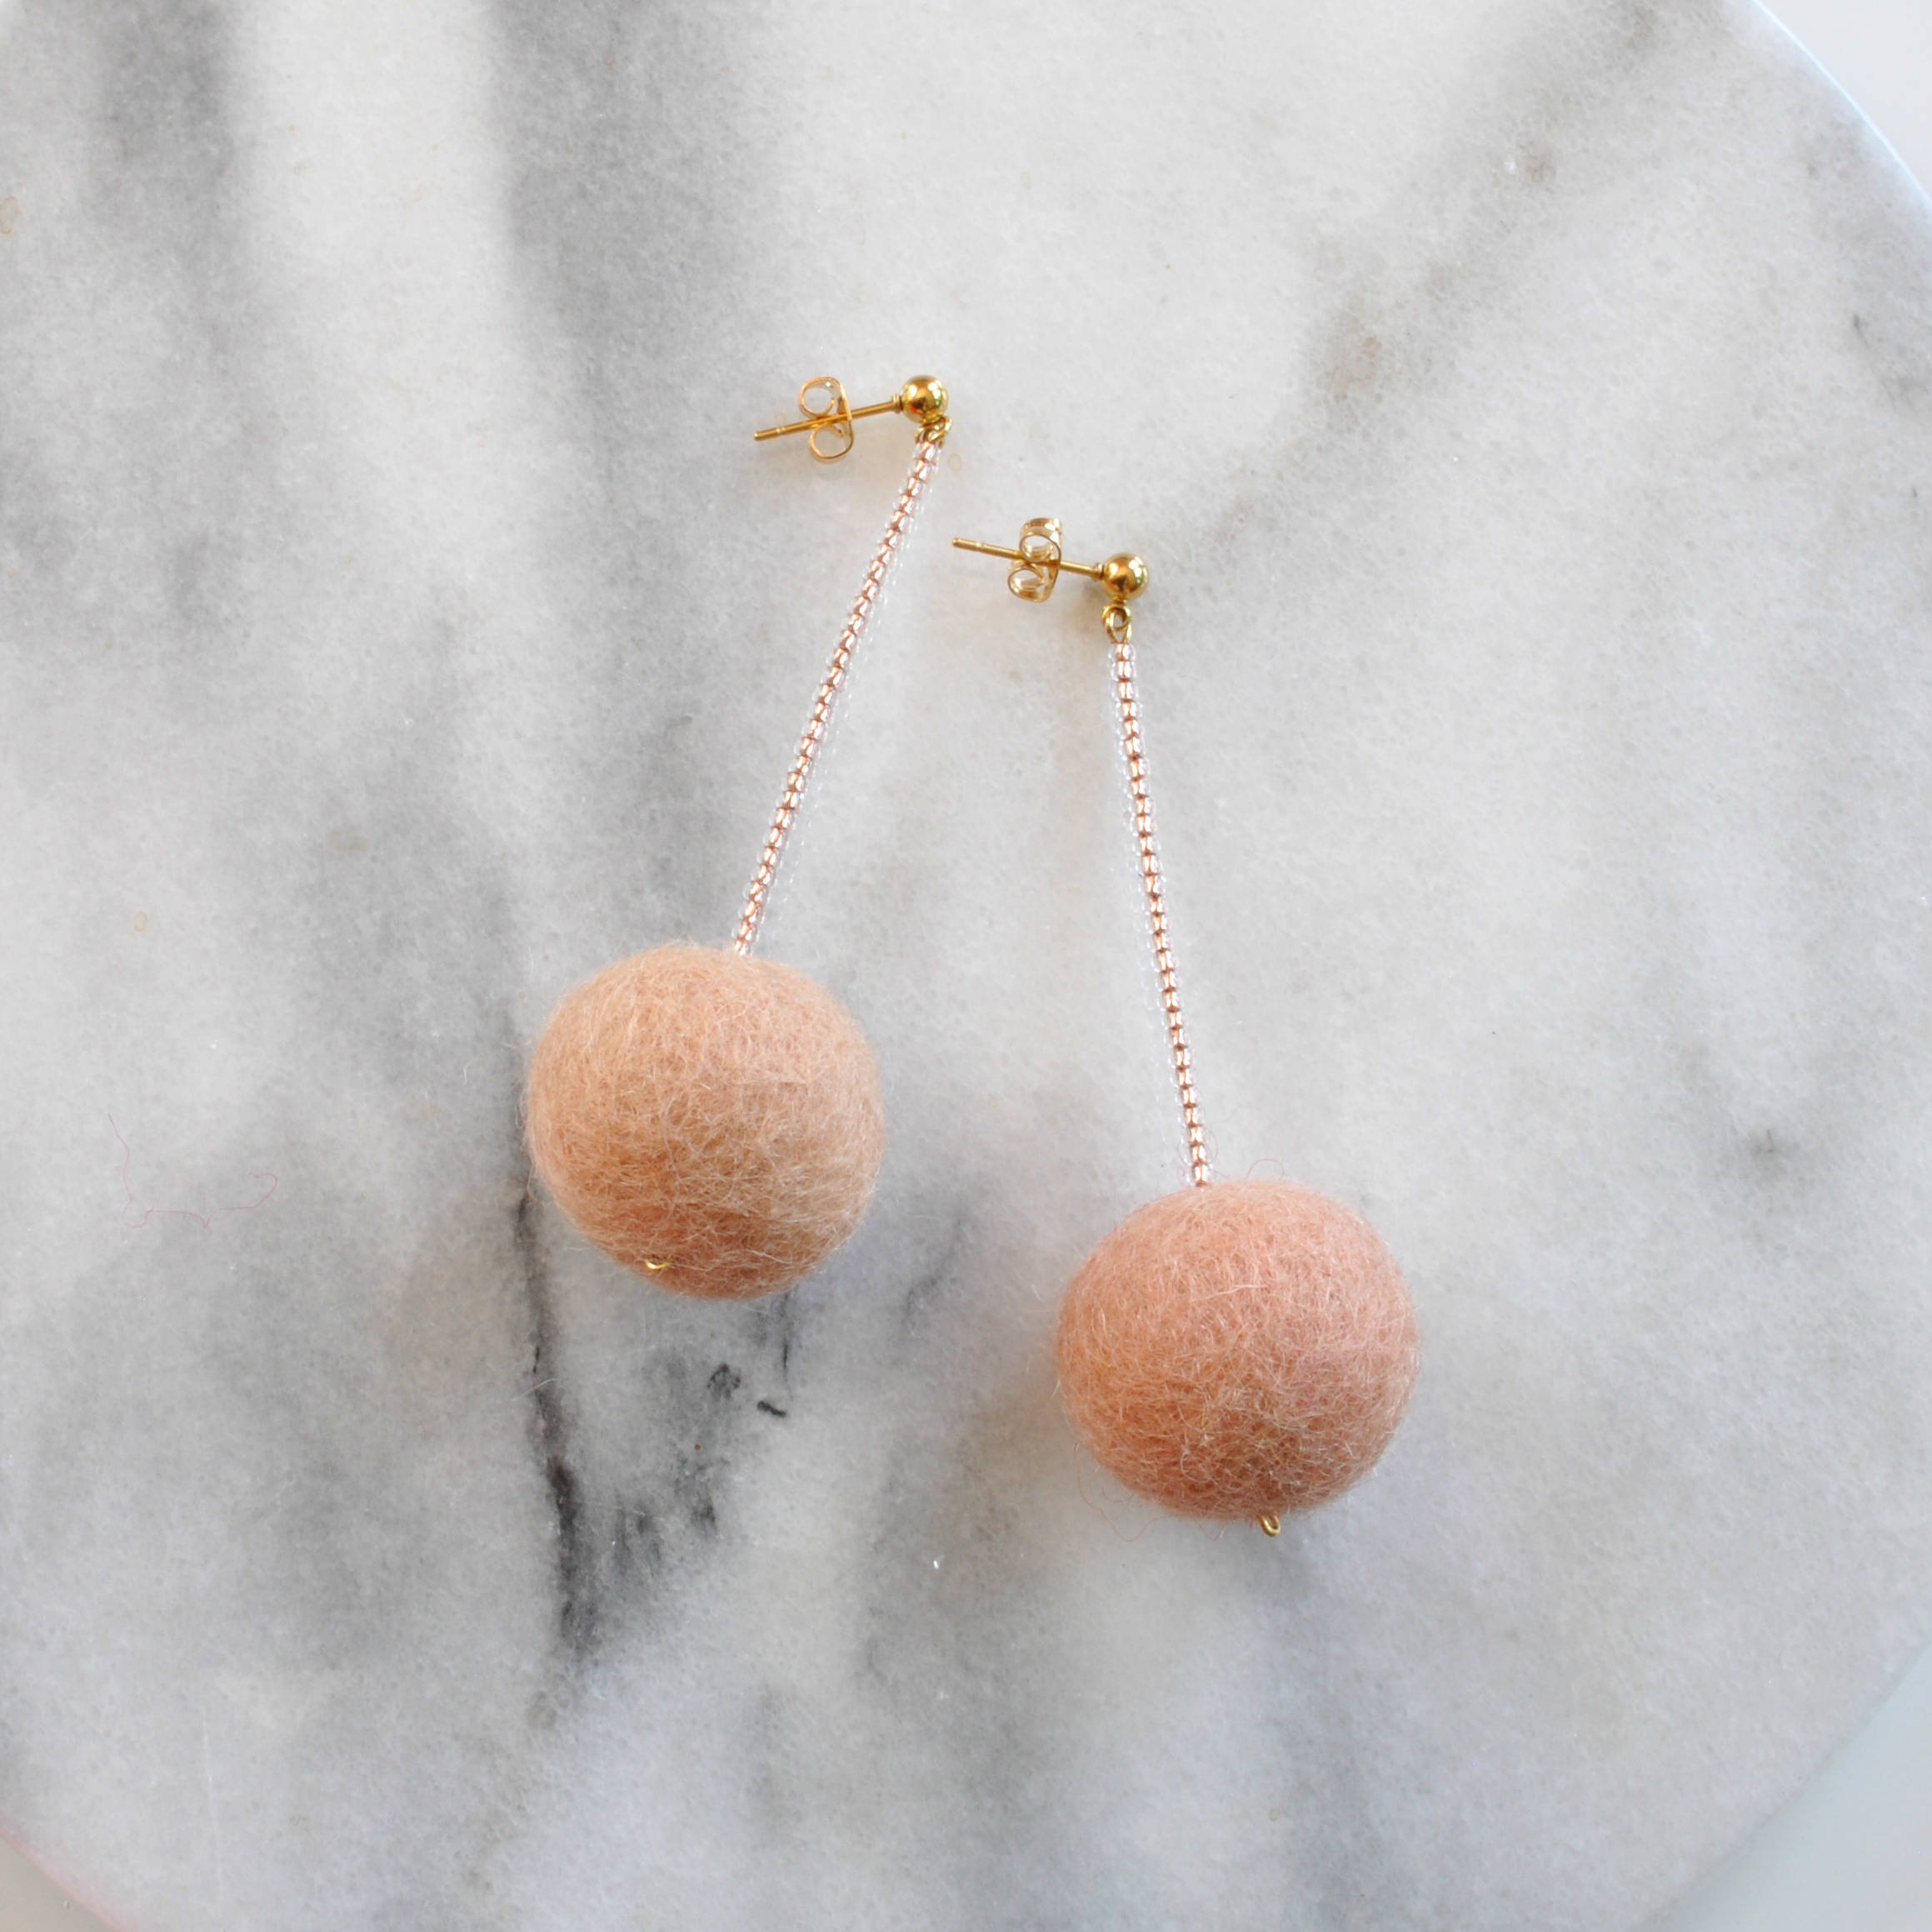 Libby & Smee Blush Earrings,  Still life